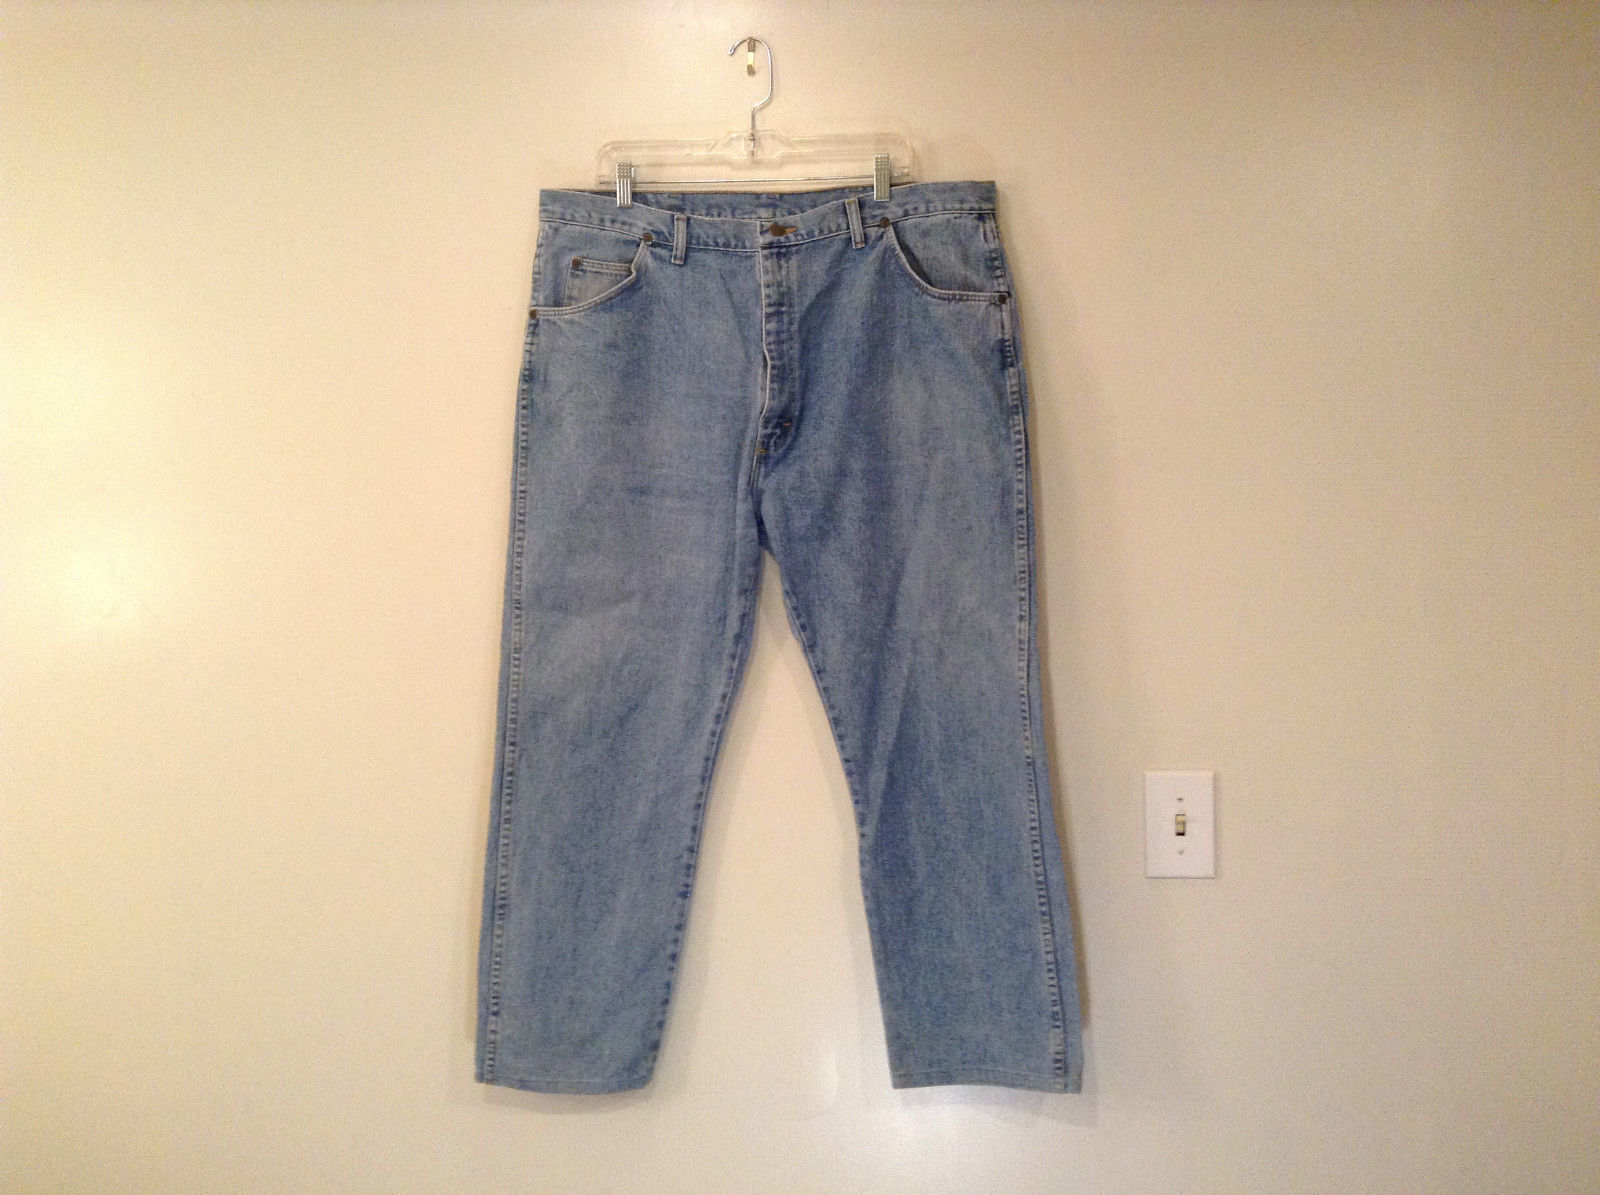 Wrangler Blue Jeans Straight Legs 100 Percent Cotton Size 42 by 30